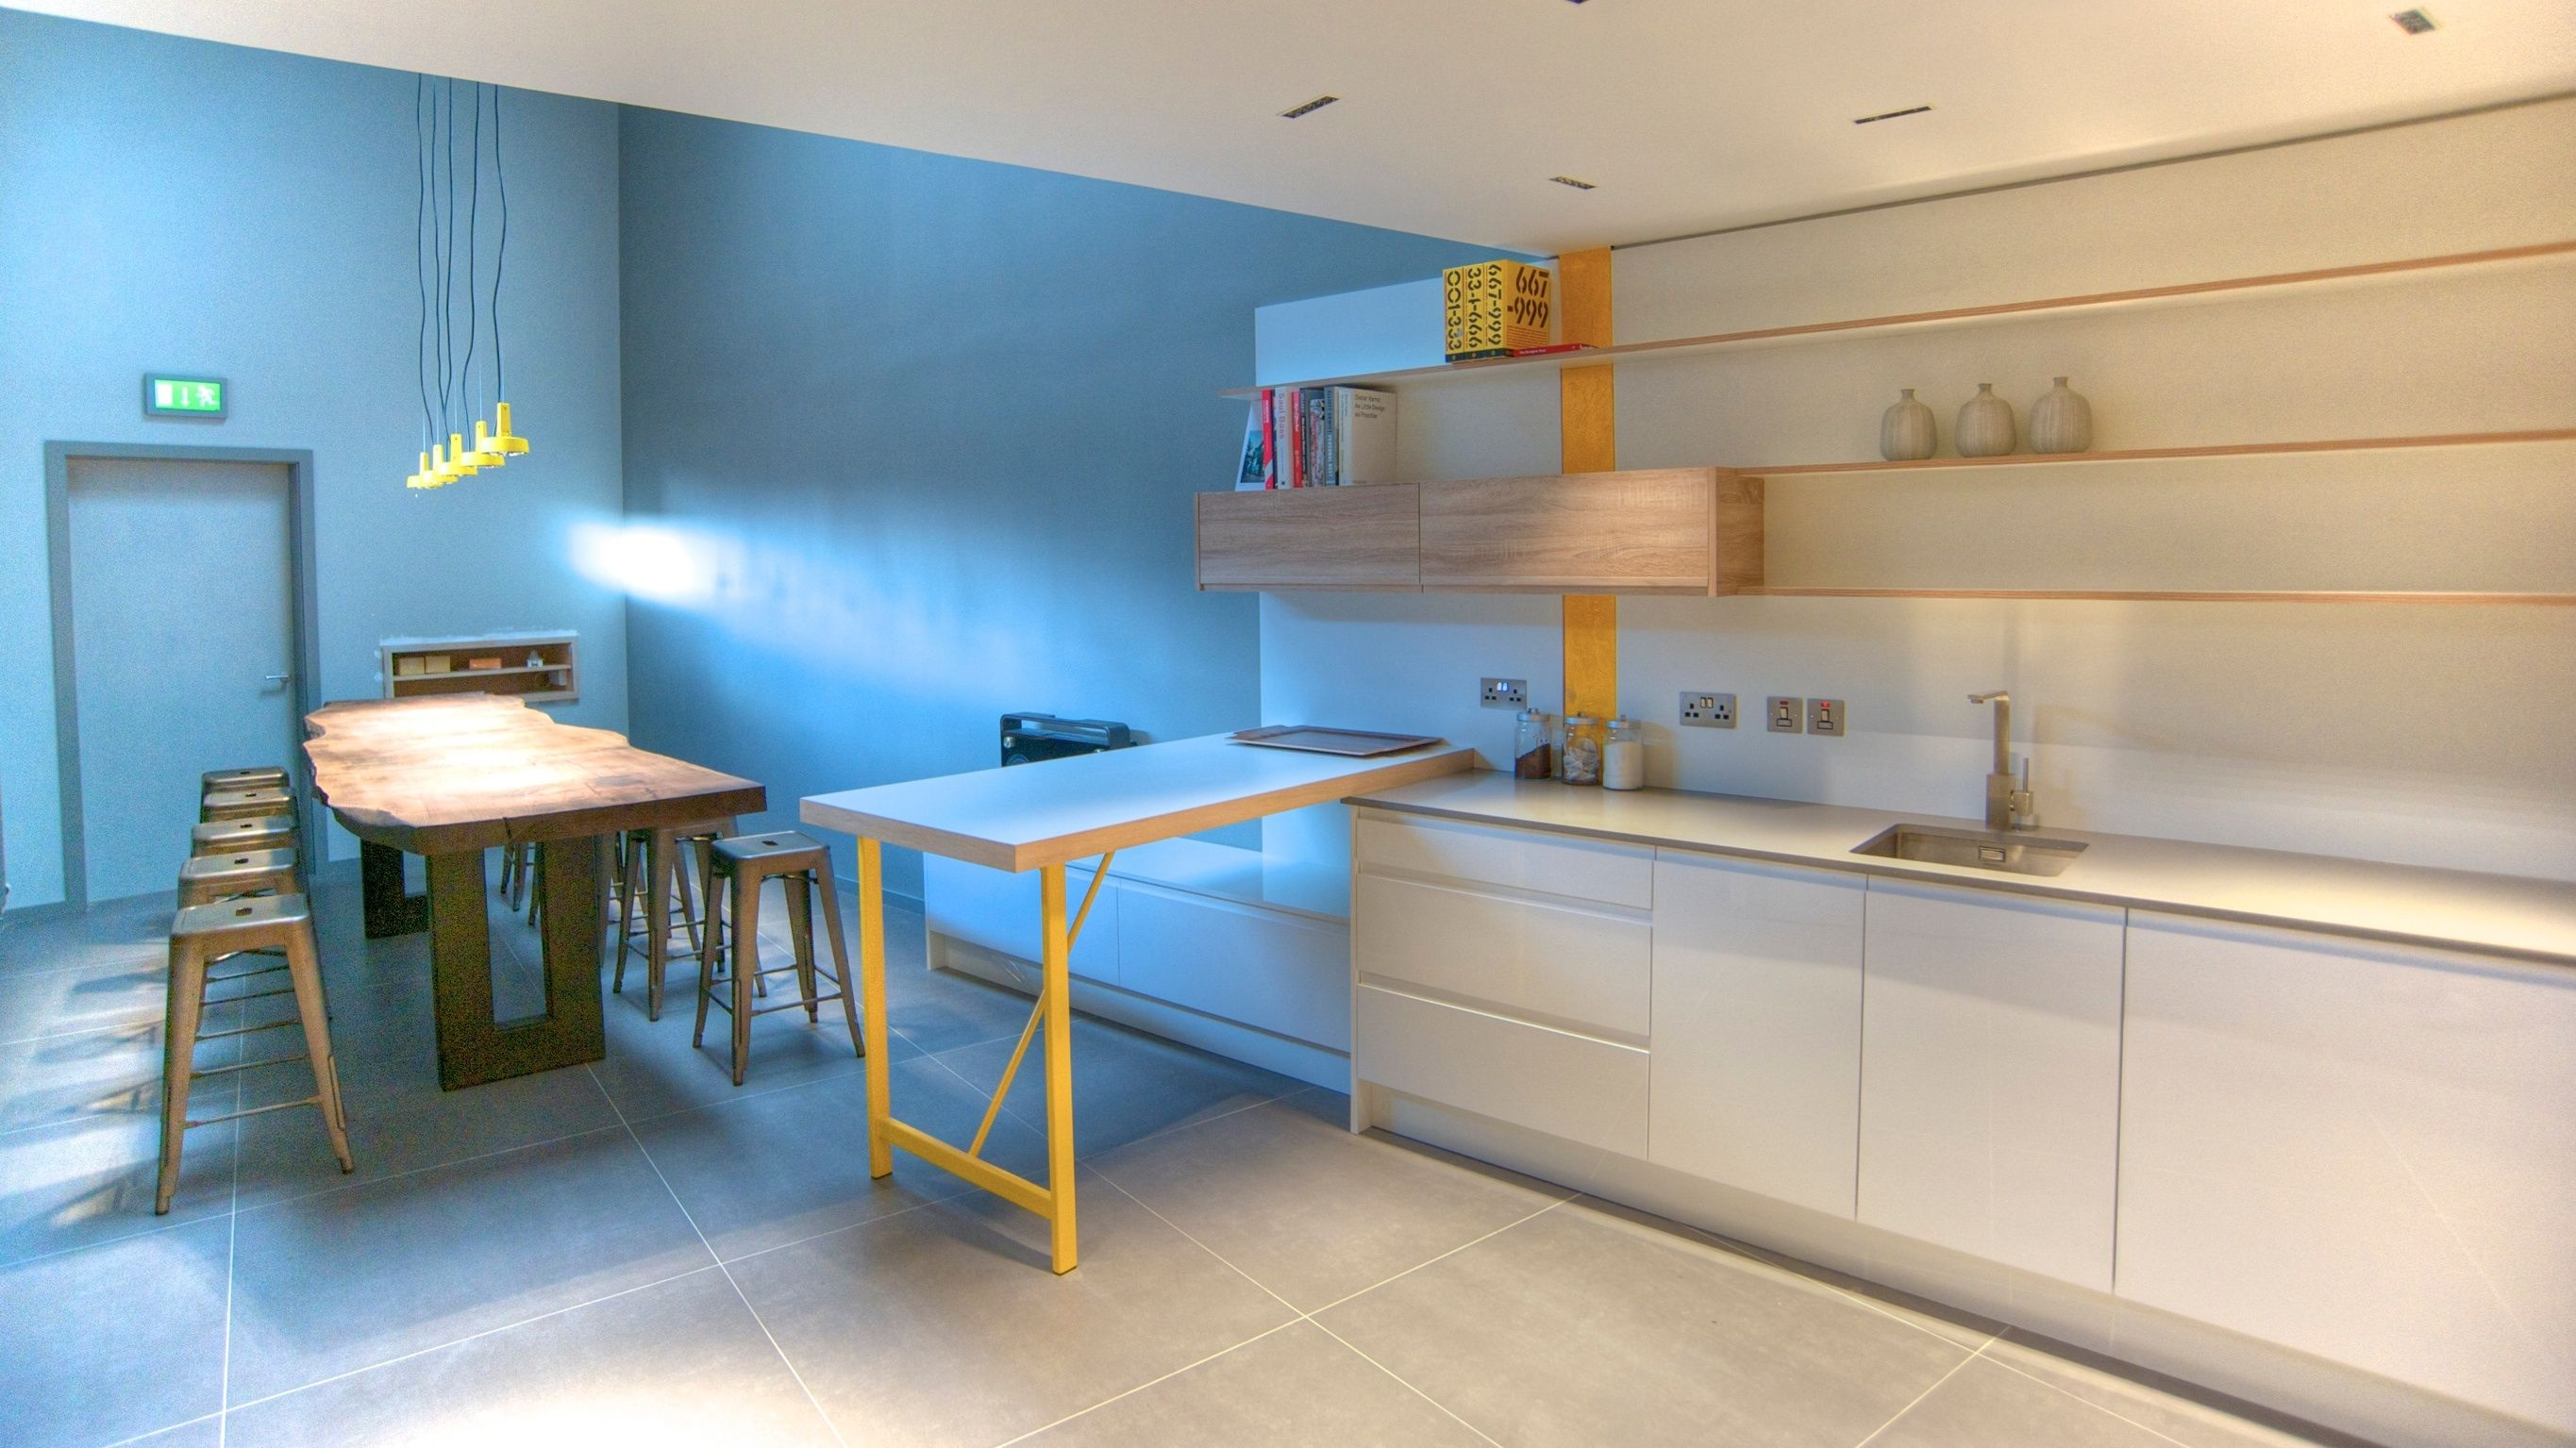 Our new kitchen from Rem-Roc in Kilkeel. We used really slim, glare ...